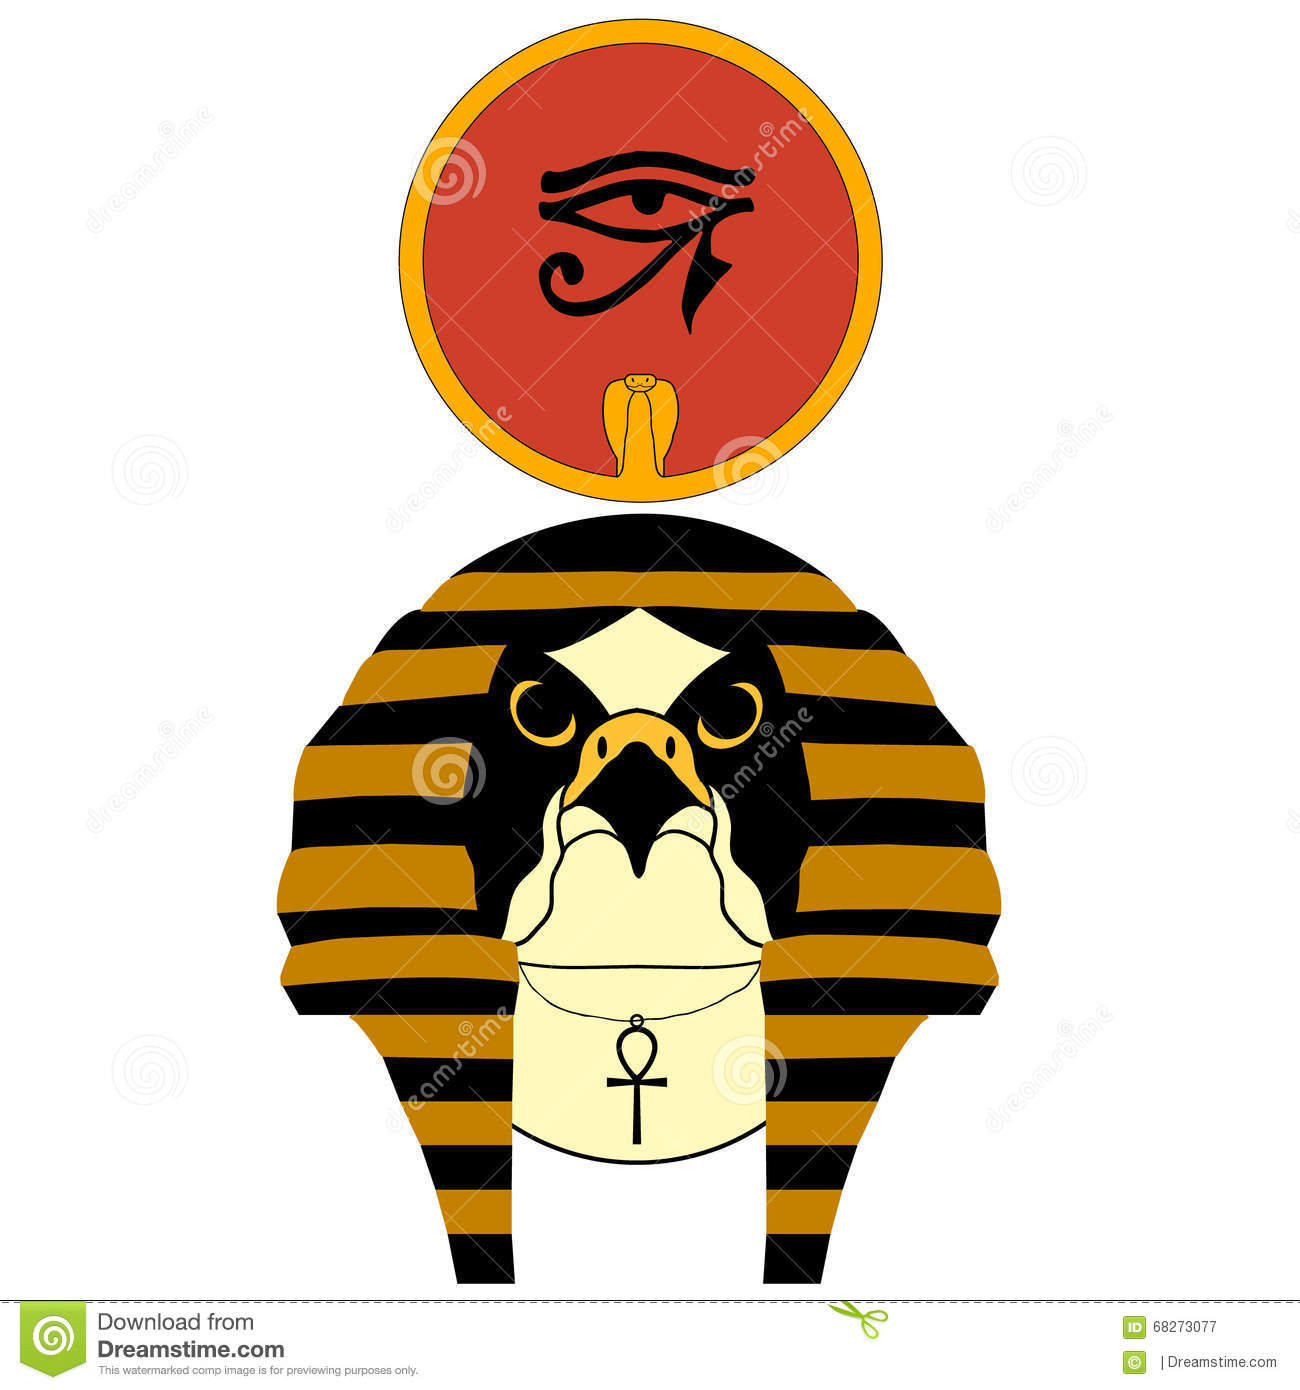 vector illustration of the ancient egyptian god ra stock vector illustration of egypt culture. Black Bedroom Furniture Sets. Home Design Ideas